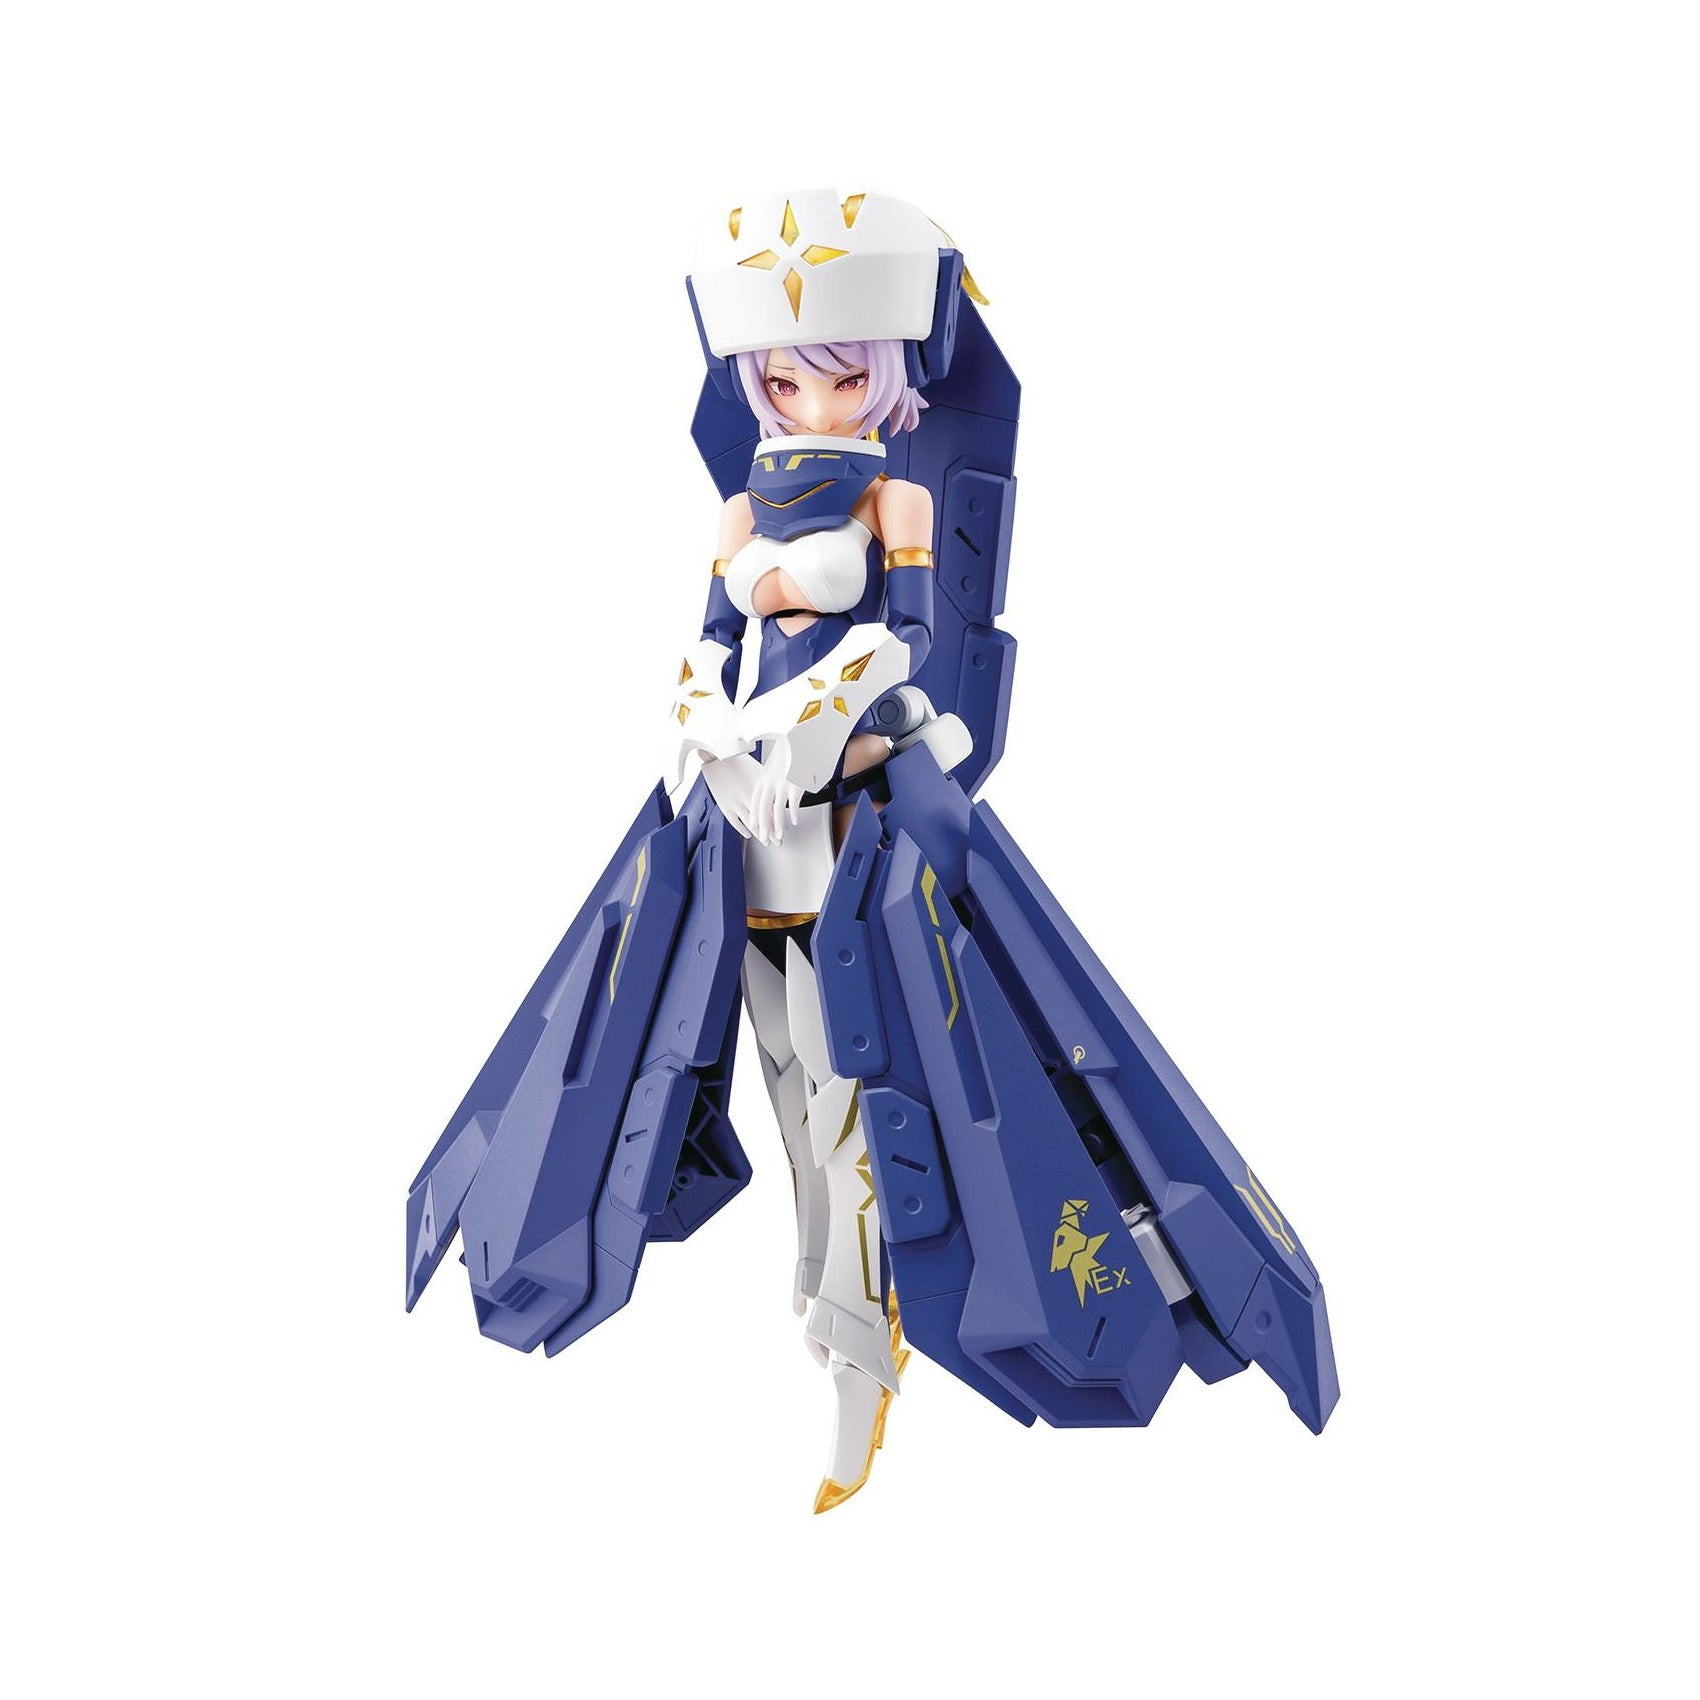 Megami Device Bullet Knights Exorcist Plastic Model Kit